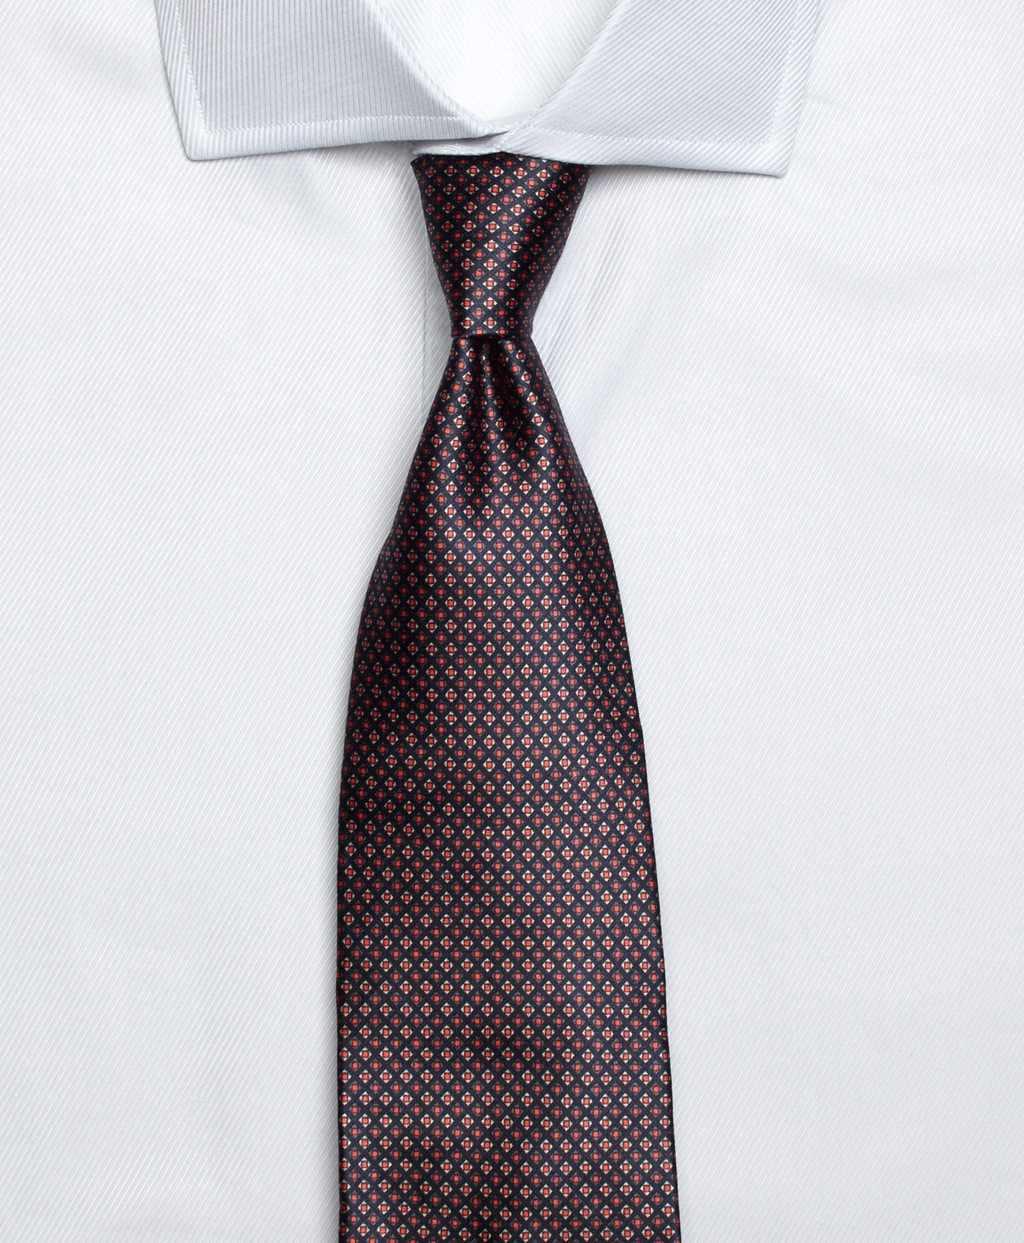 ad69fa033cfd Brooks Brothers Golden Fleece 7-fold Micro Square Tie in Gray for ...